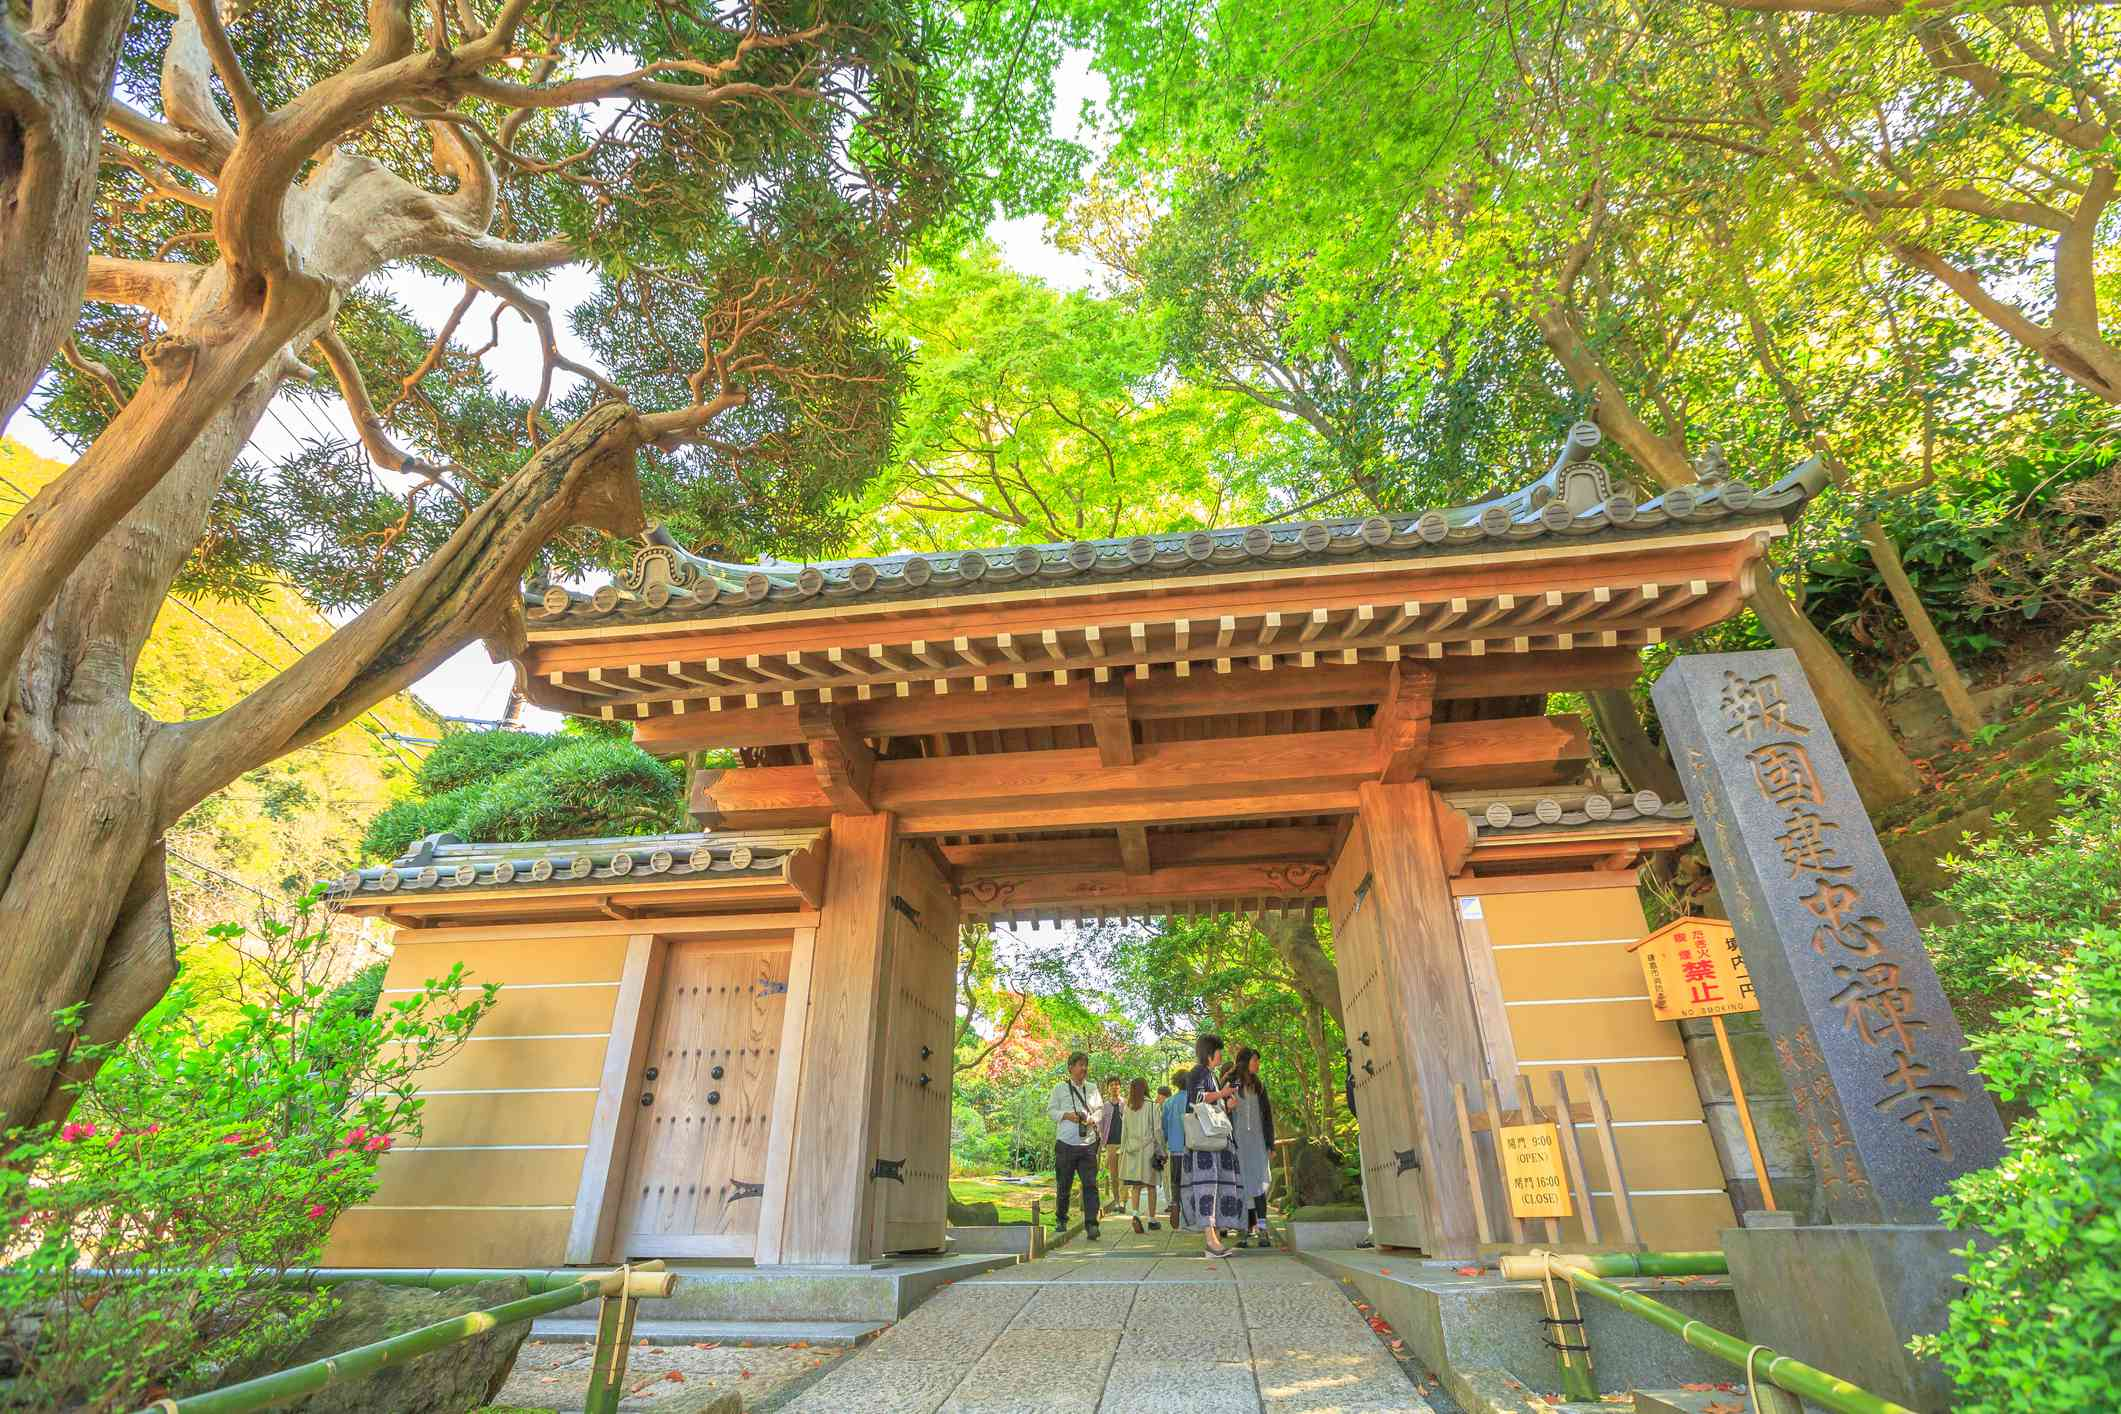 main gate entrance of Take-dera Temple or Hokoku-ji, one of Buddhist Zen temples in Kamakura, Kanagawa Prefecture, famous for a vast bamboo forest.